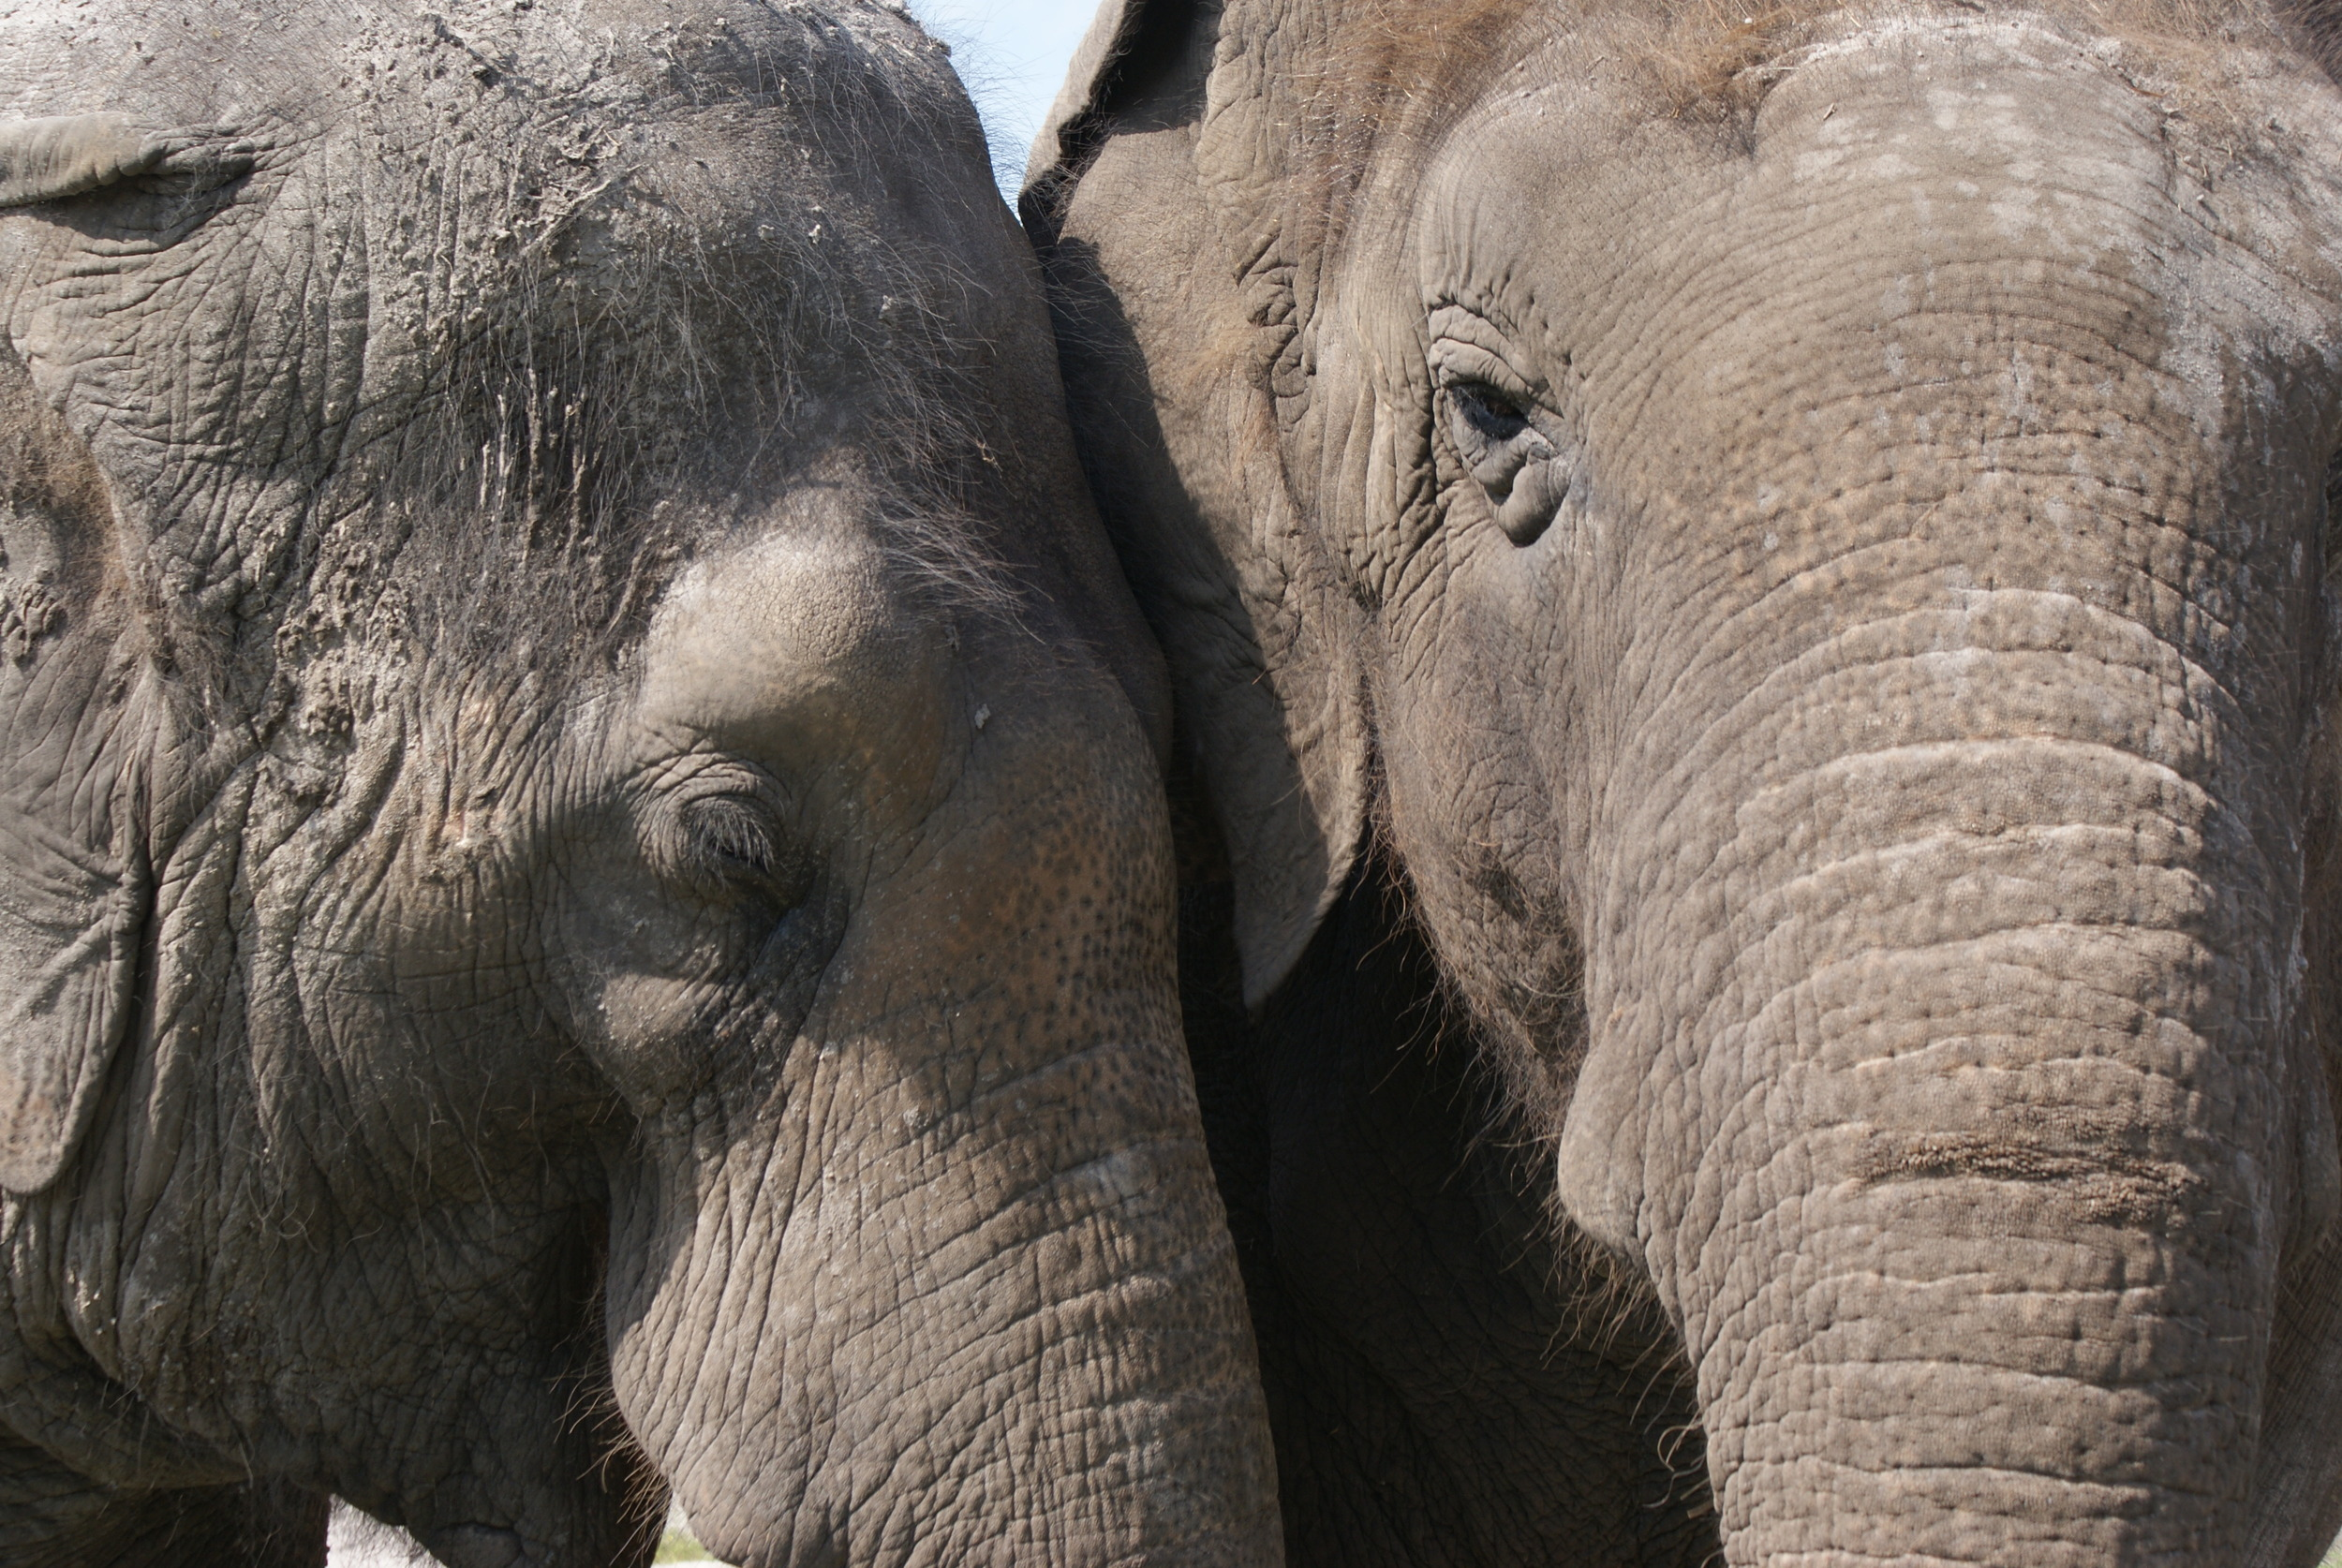 Elephant Conservation Ctr Aug 2014 040.JPG